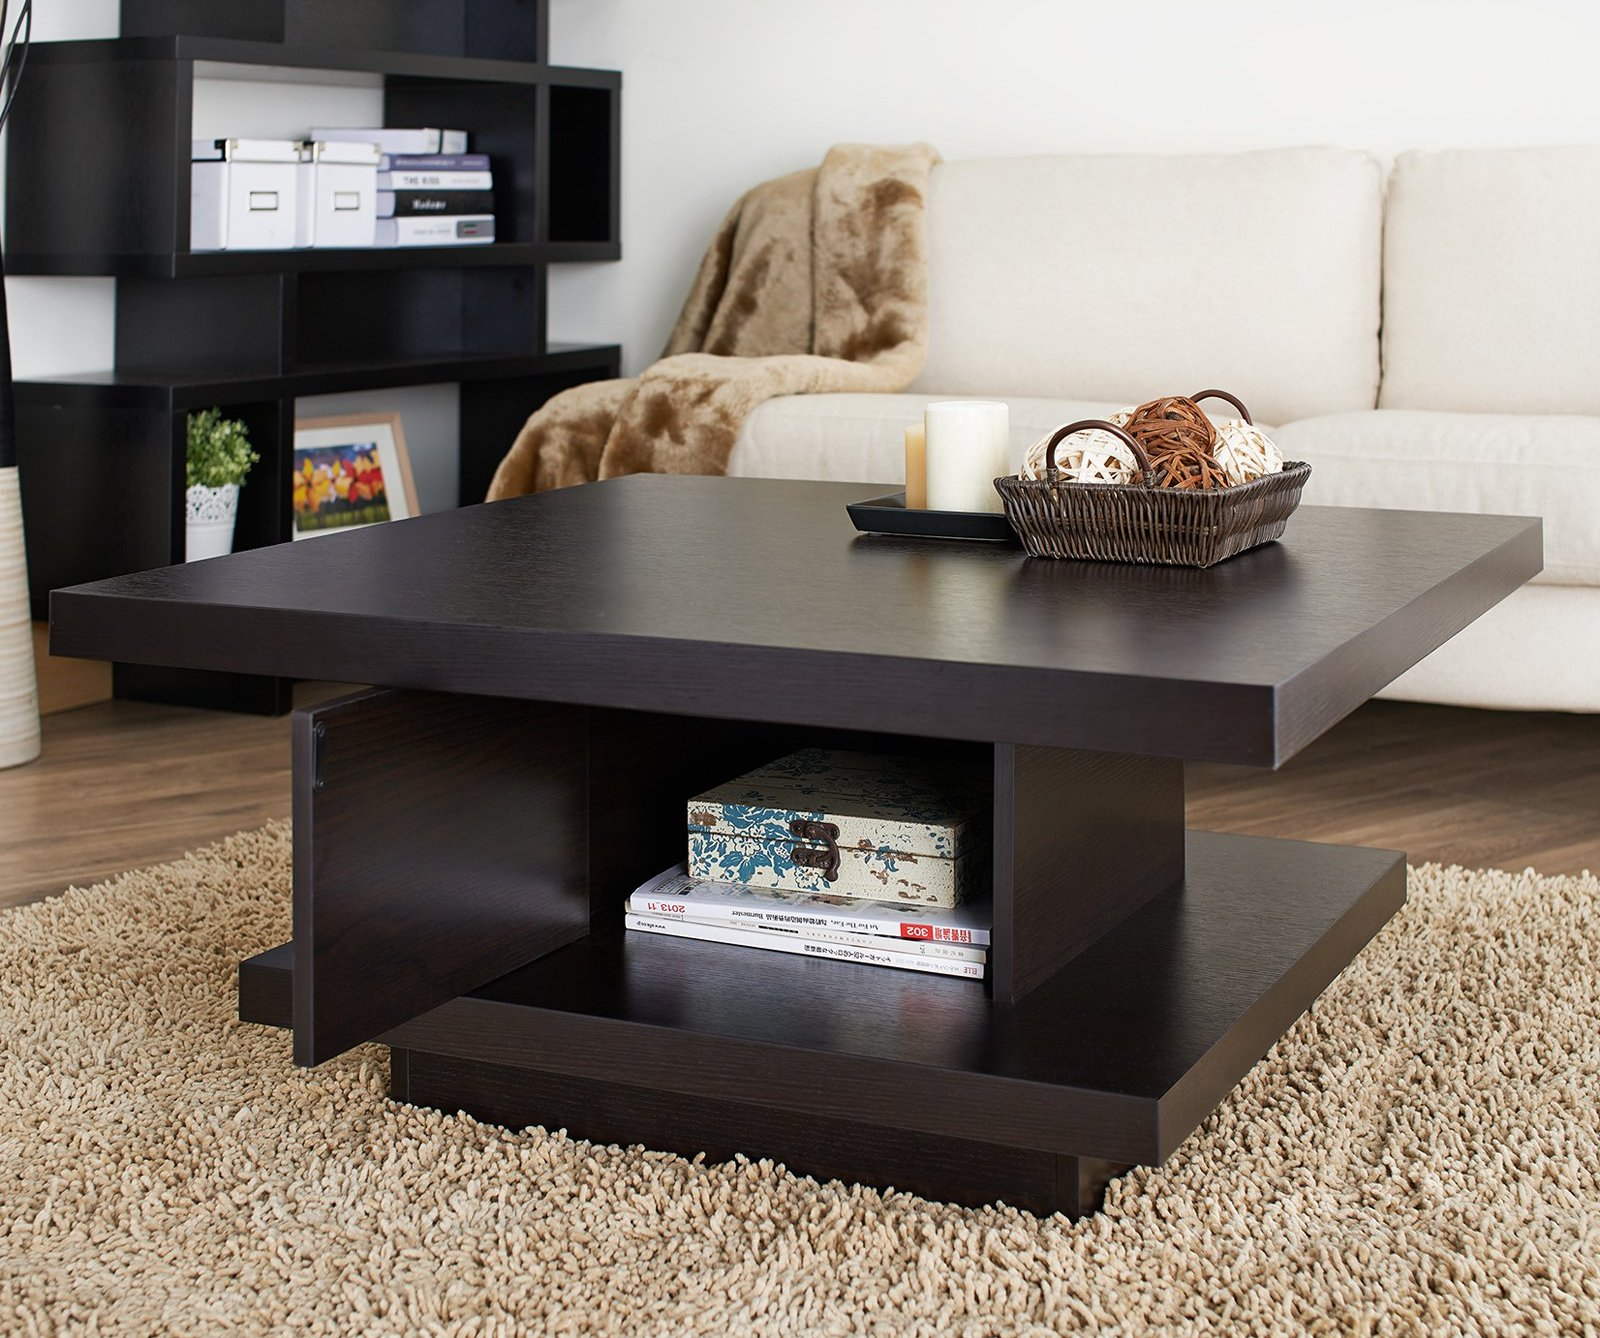 oversized coffee table books